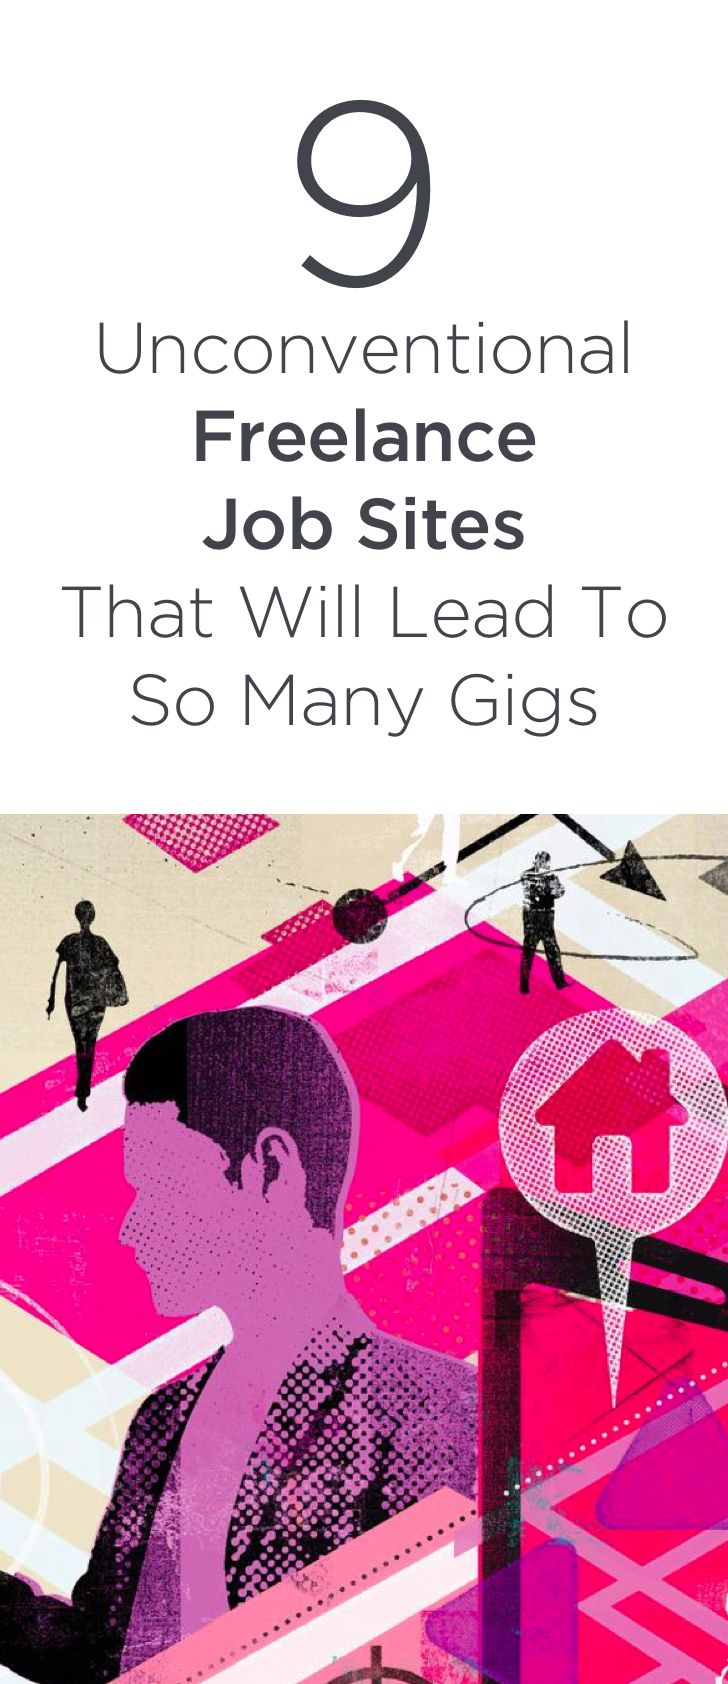 9 unconventional freelance job sites that will lead to so many gigs - Find Local Jobs Using Local Job Search Sites